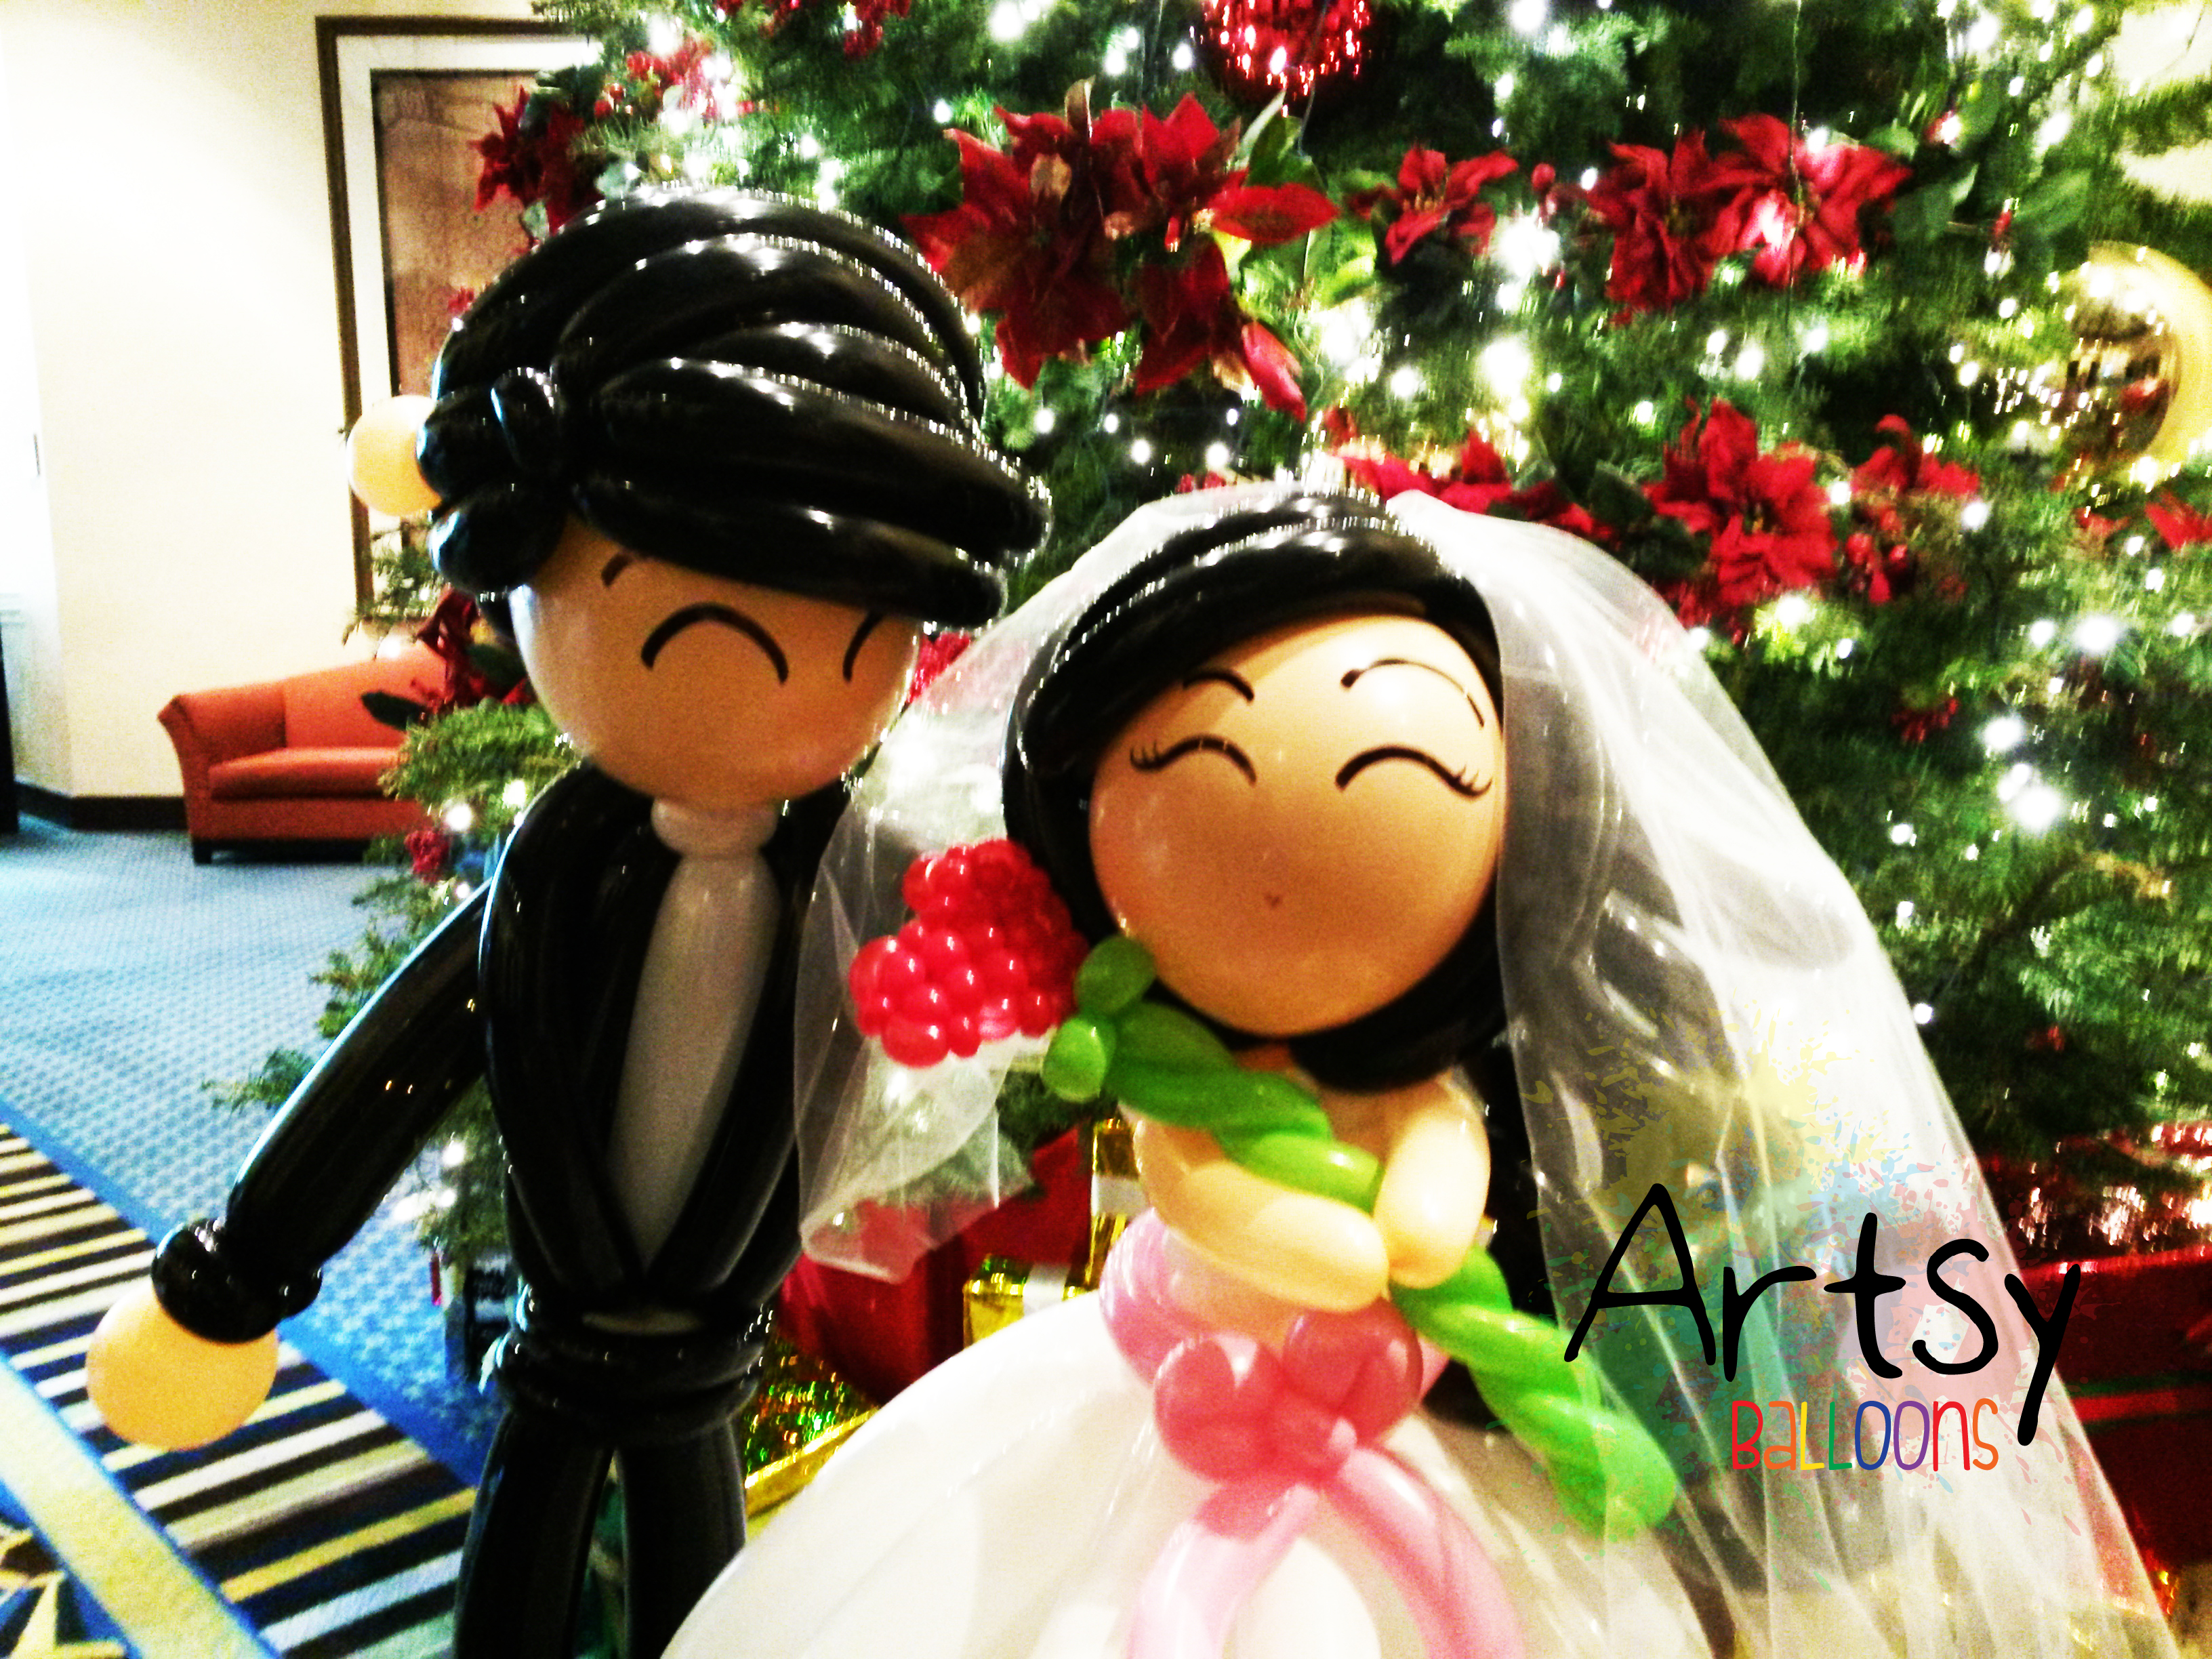 , Wedding couple for a pair of newlyweds!, Singapore Balloon Decoration Services - Balloon Workshop and Balloon Sculpting